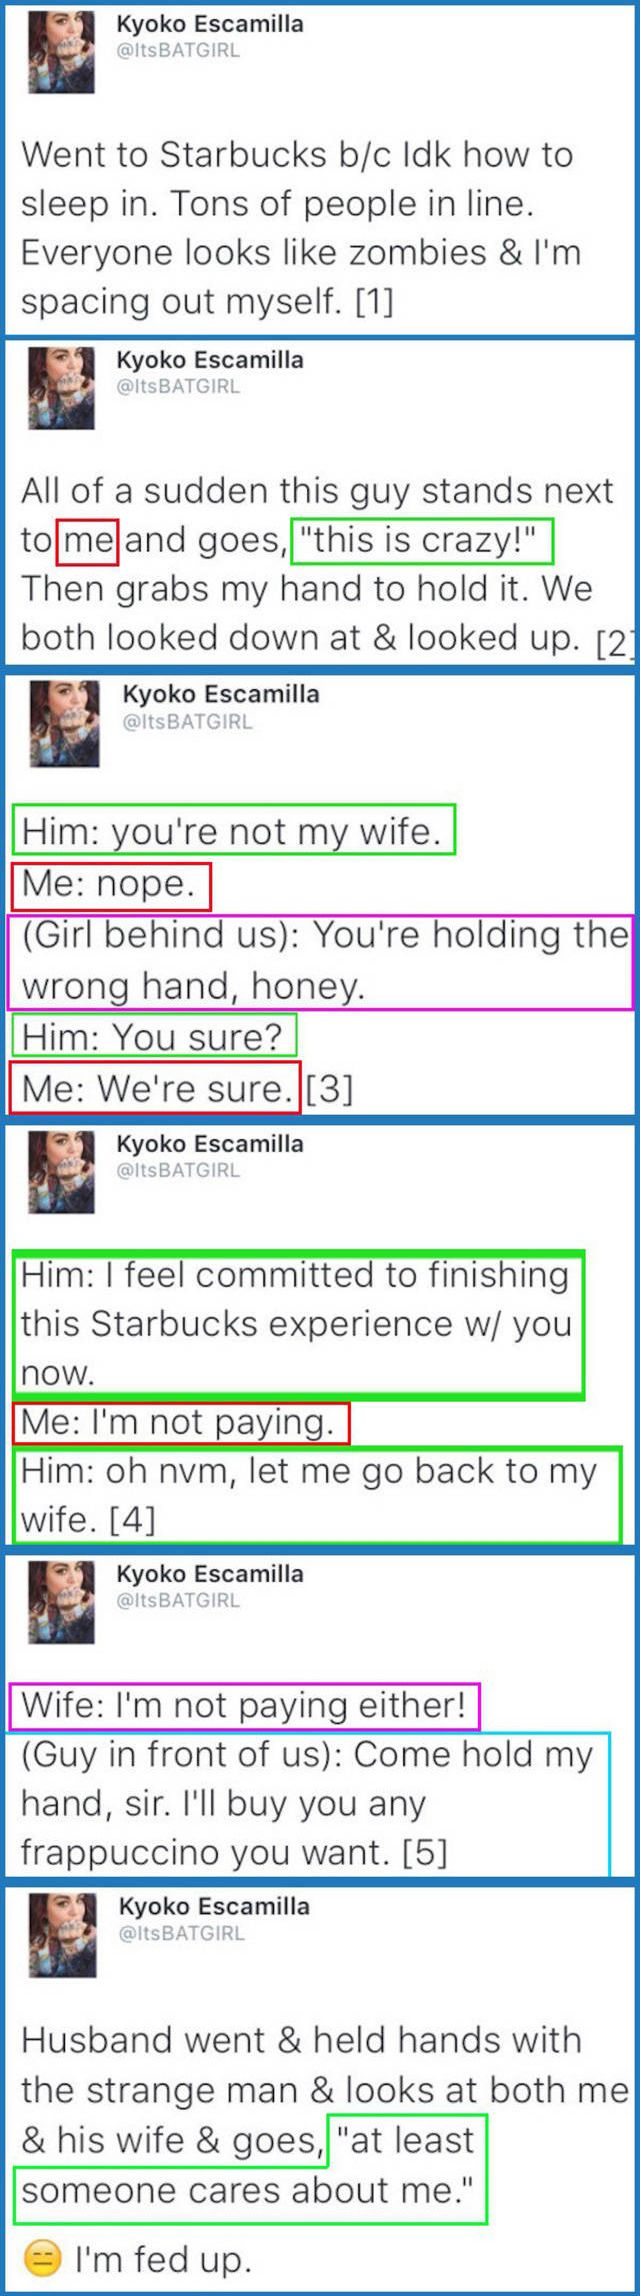 Something strange happened at Starbucks